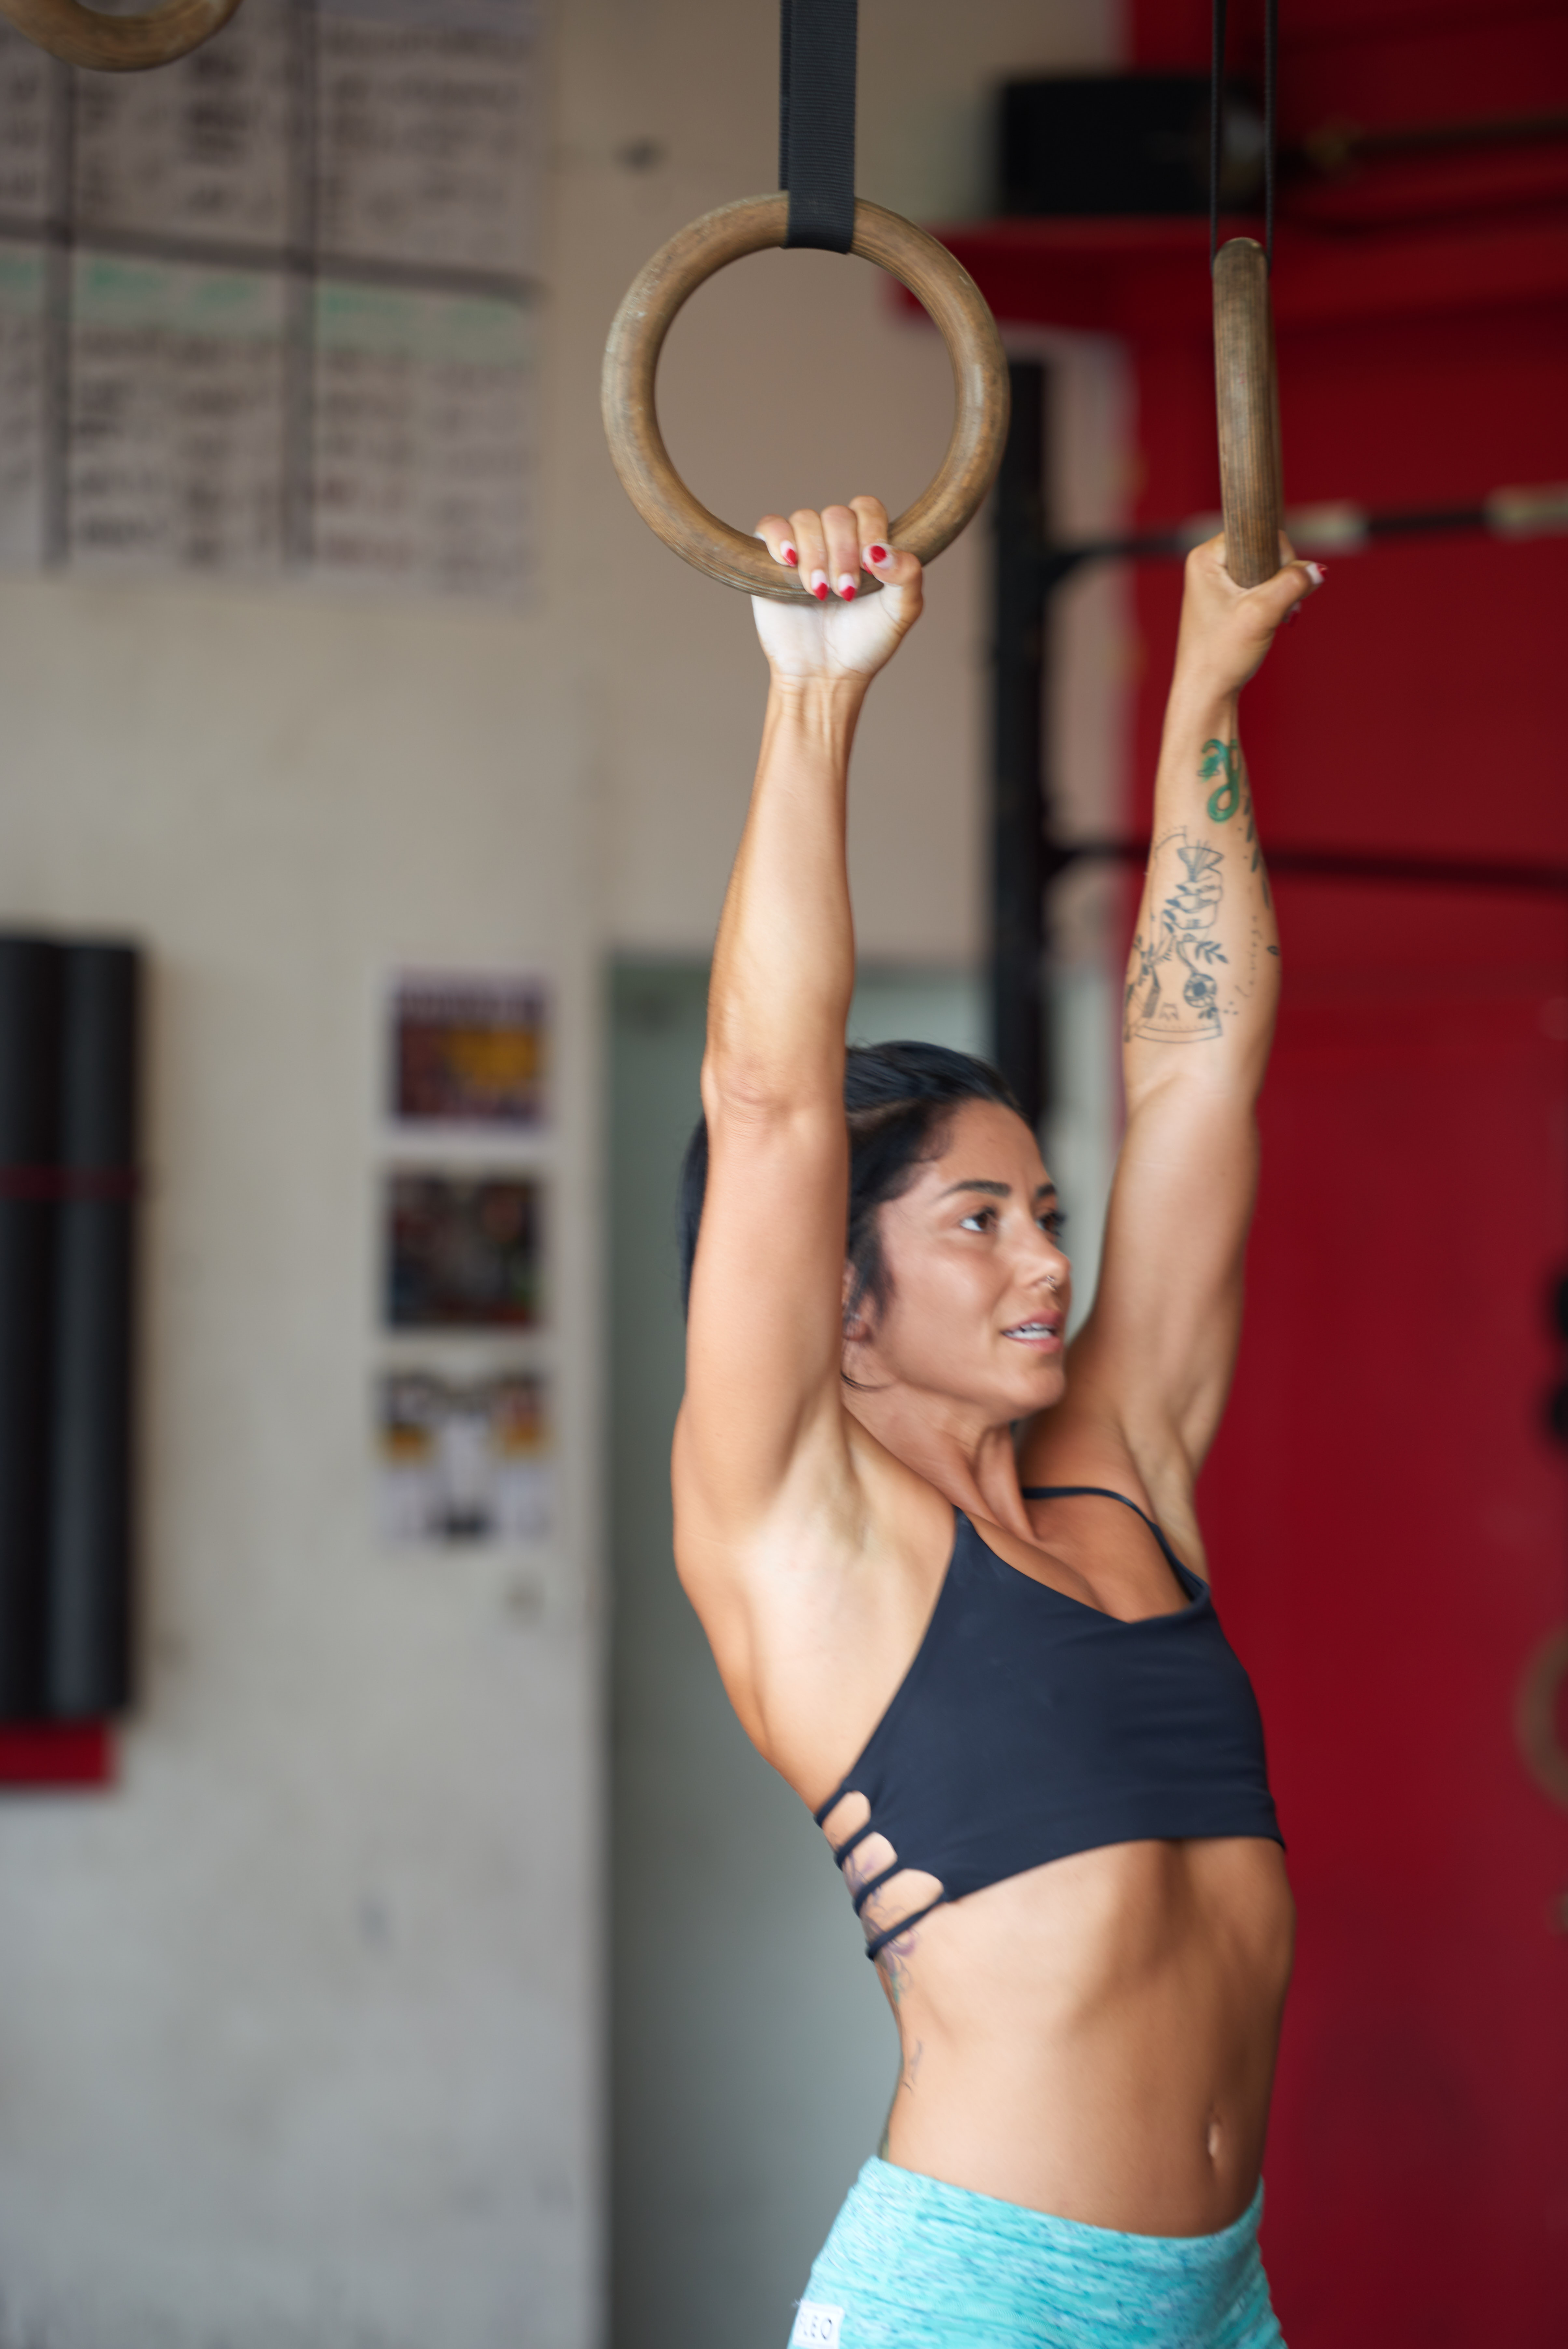 Pull Up Queen Review – Does It Help Women Master The Pull Up?